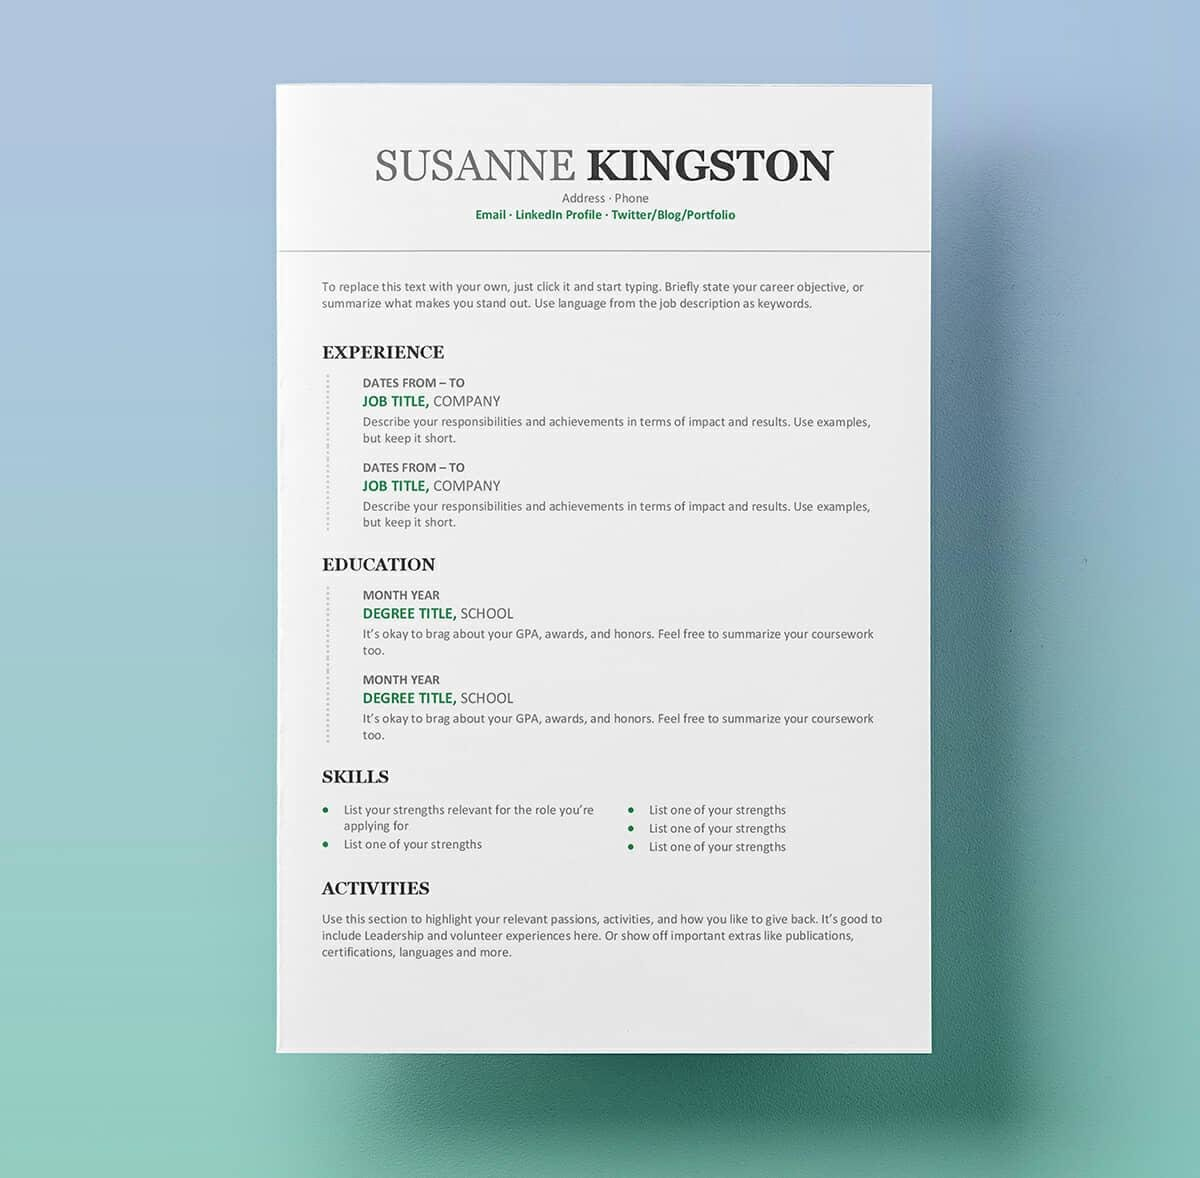 resume templates for microsoft word free company template fundraising leasing director Resume Company Resume Template Word